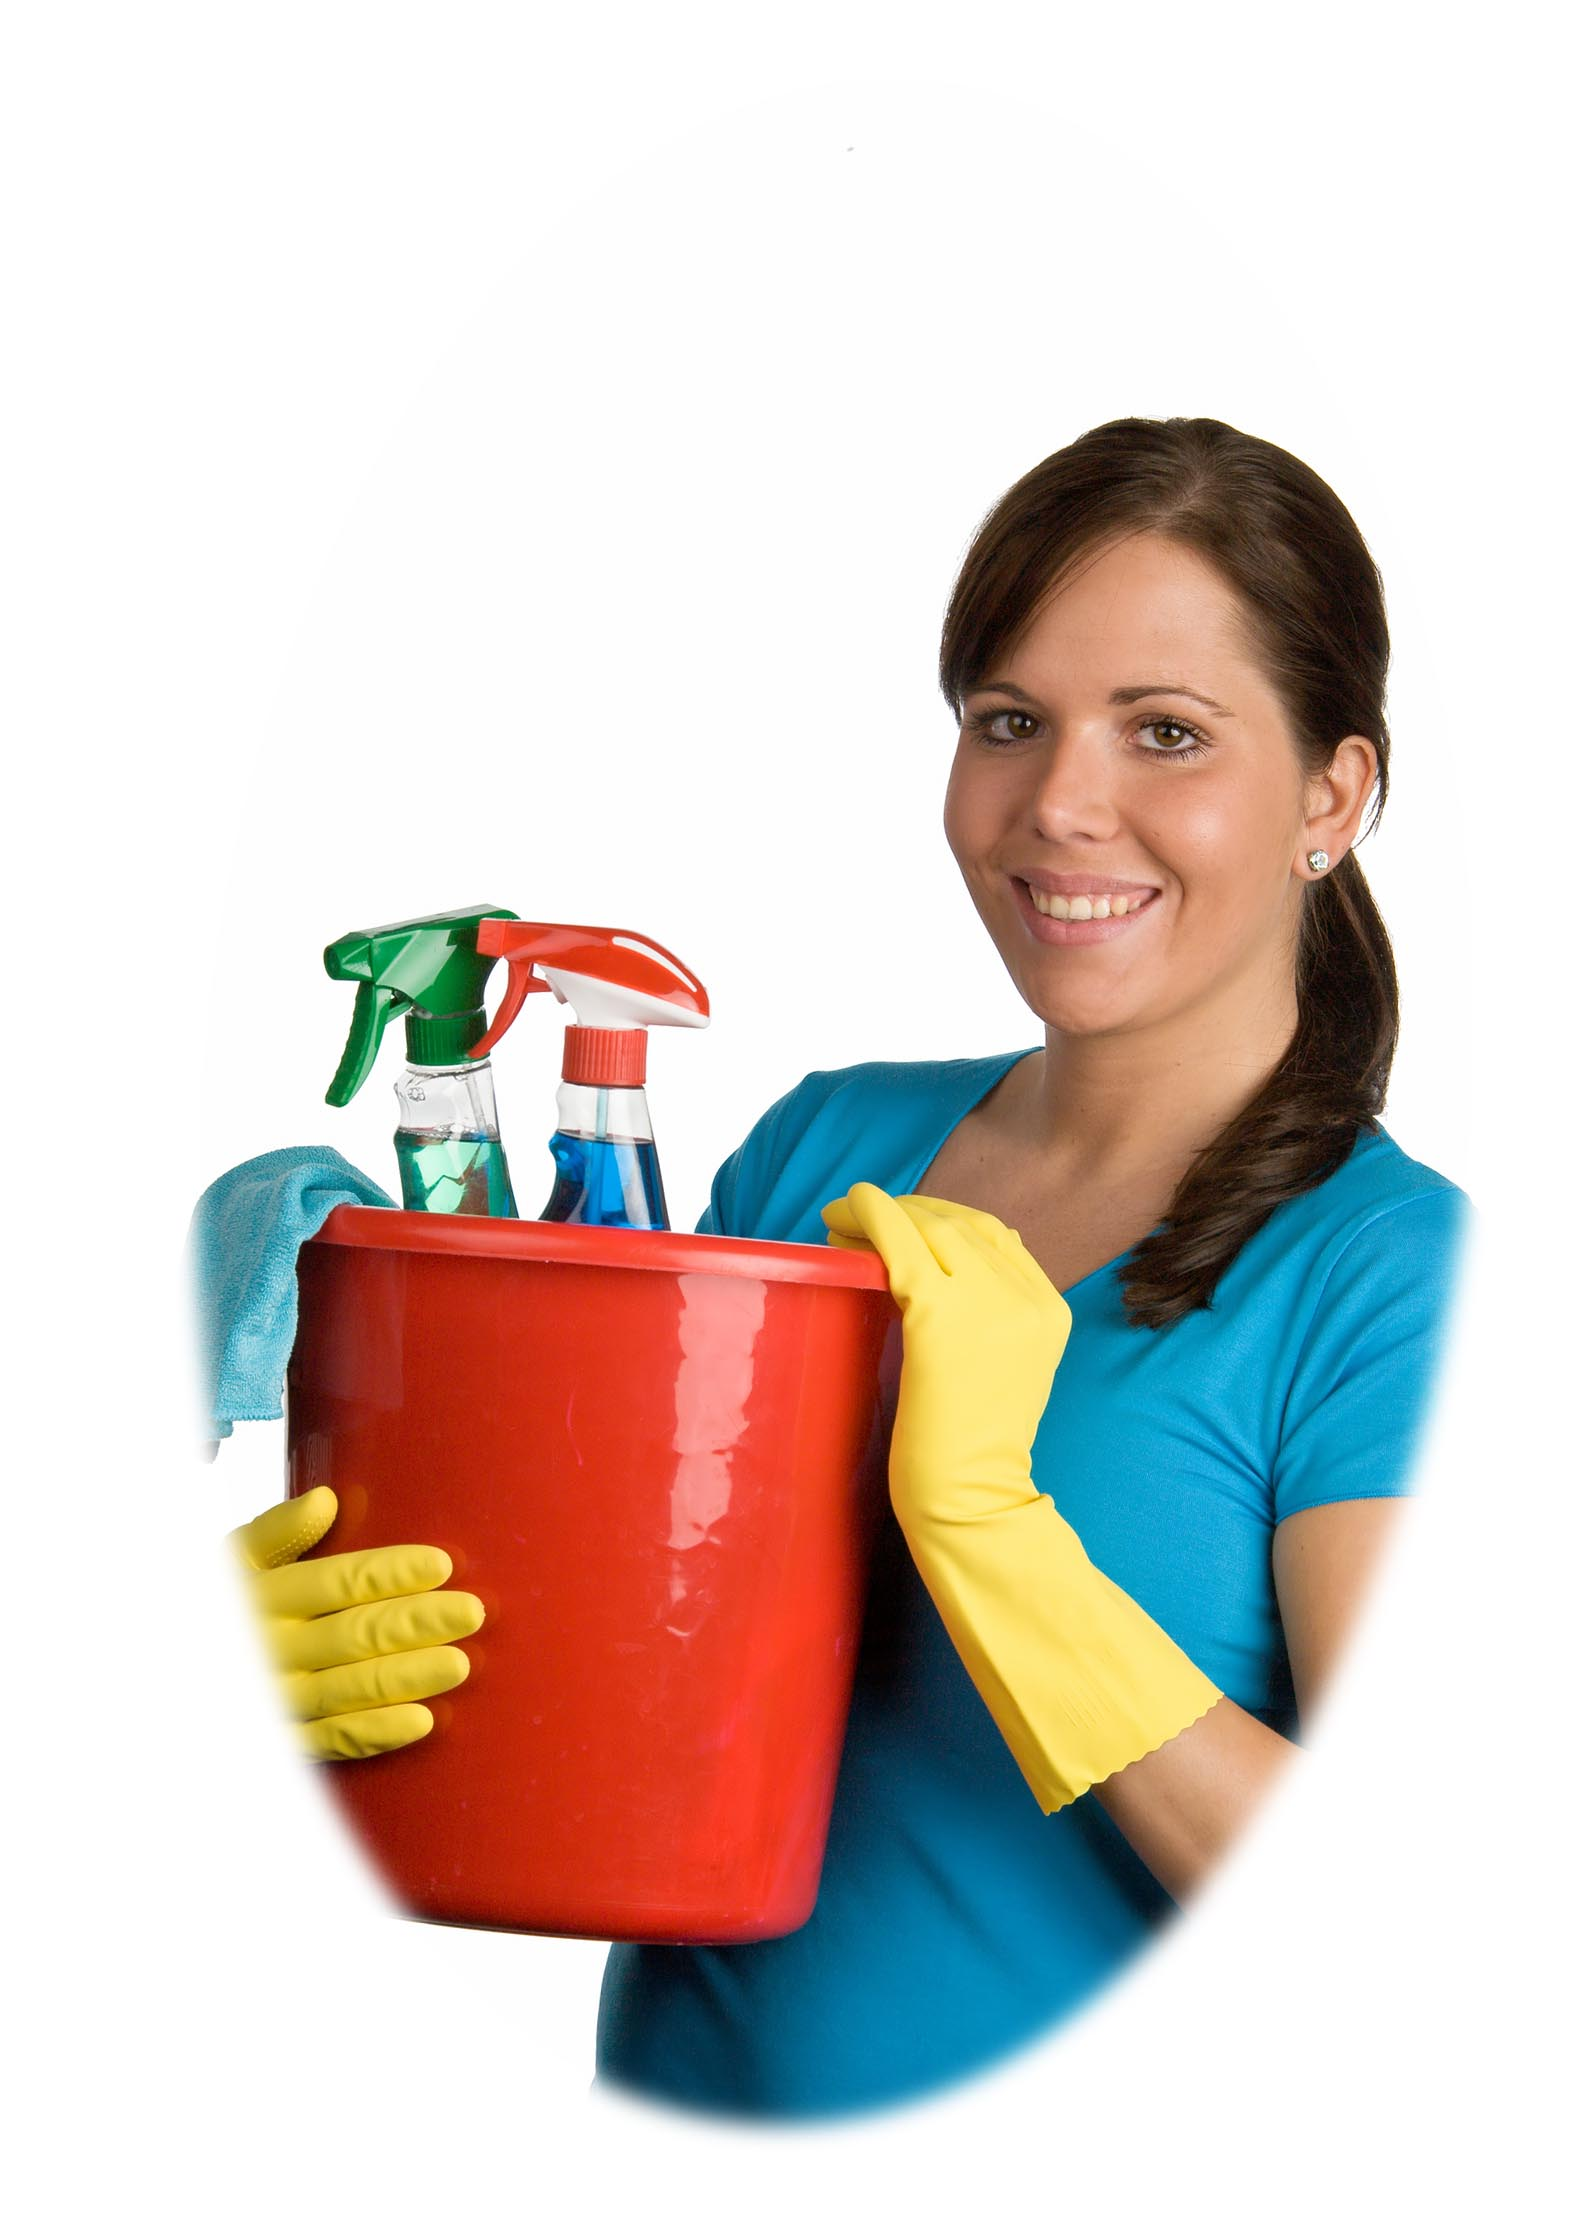 Copy of Kathy's House cleaning list and duties - Num Sum